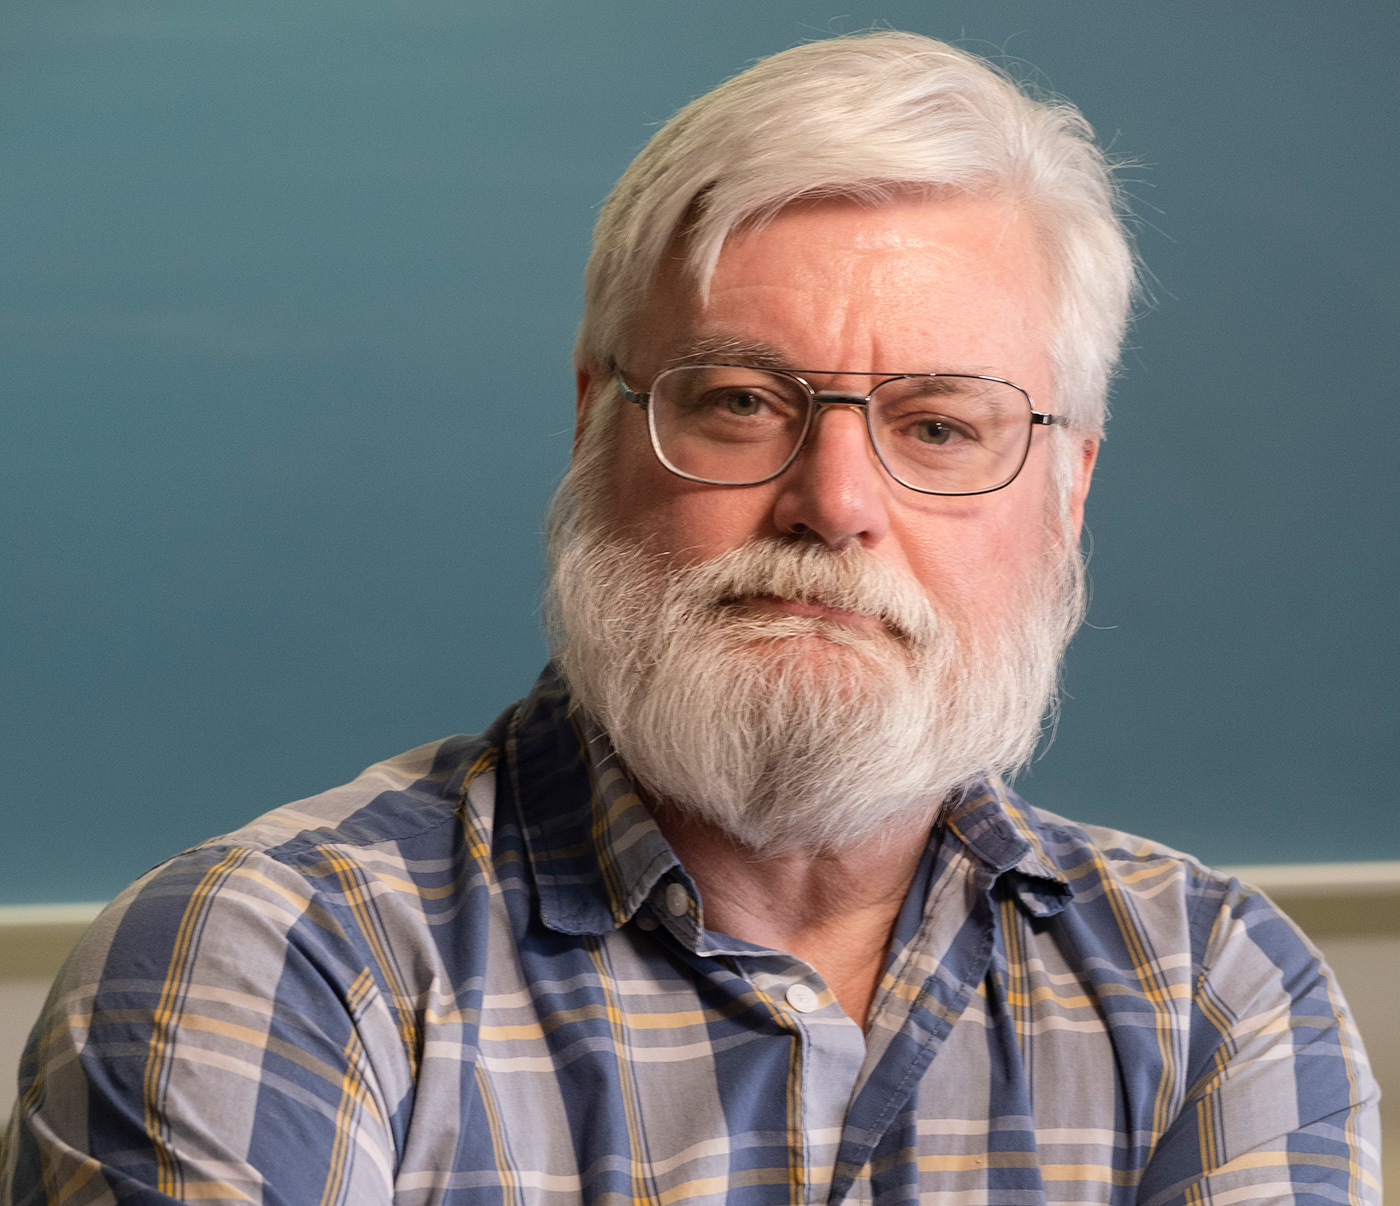 Garth Hall is an Associate Professor in the Biology Department at UMass Lowell.